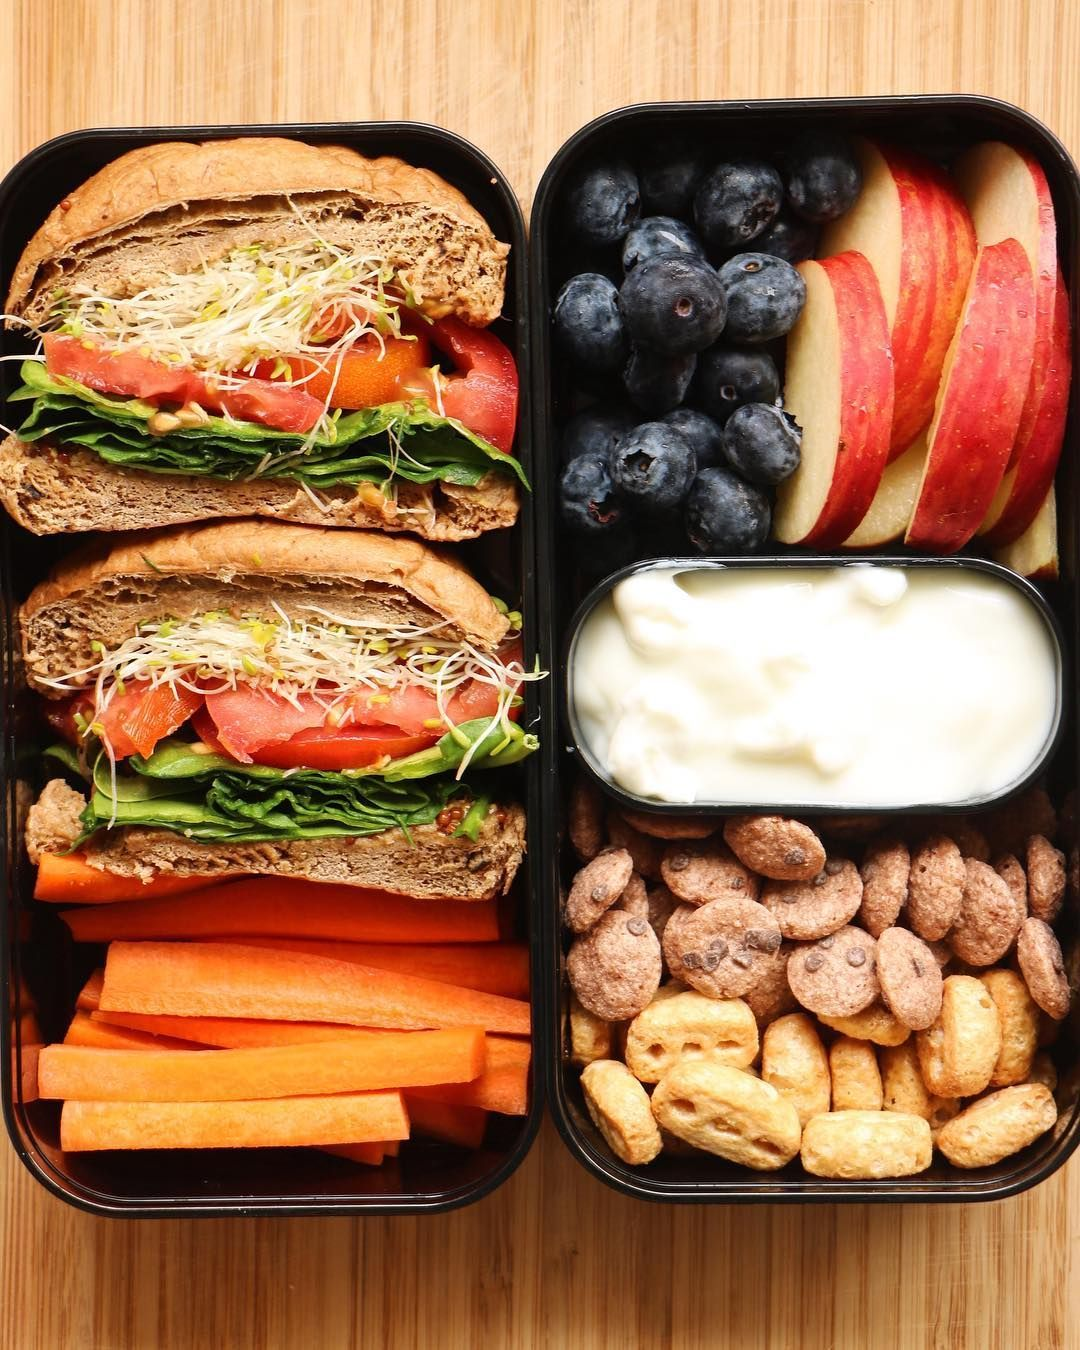 Lin on Instagram Veggie sandwich cereal and soy yogurt fruits and carrot sticks thanks to monbento whose black lunch boxes look like sleek armorclad  Veggie sandwich cere...